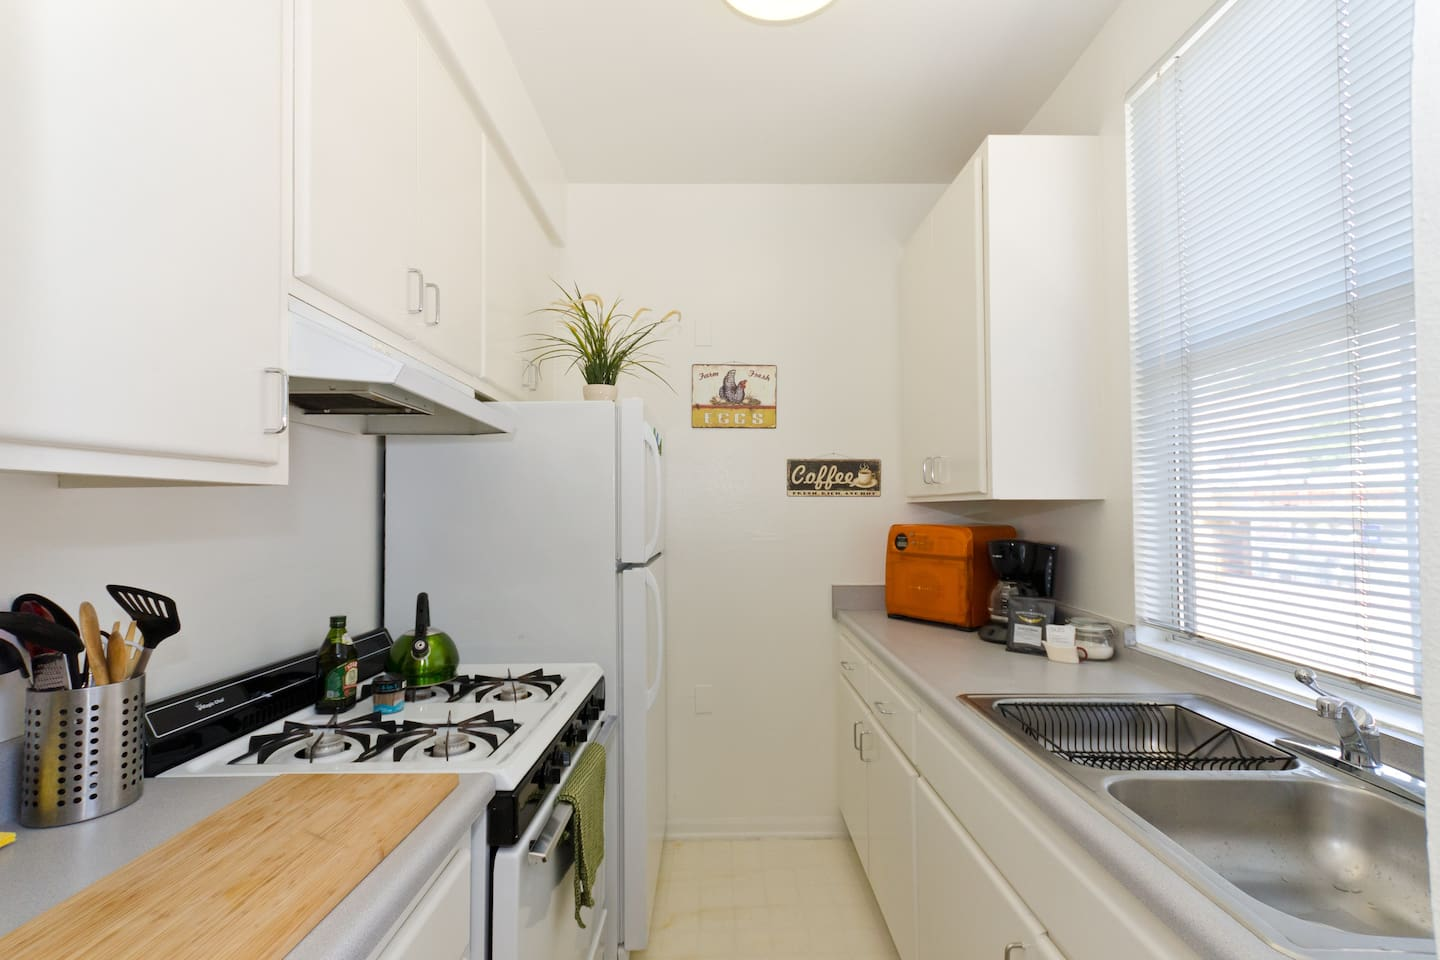 Silverlake Green Machine Studio 7.48 - Apartments for Rent in Los ...